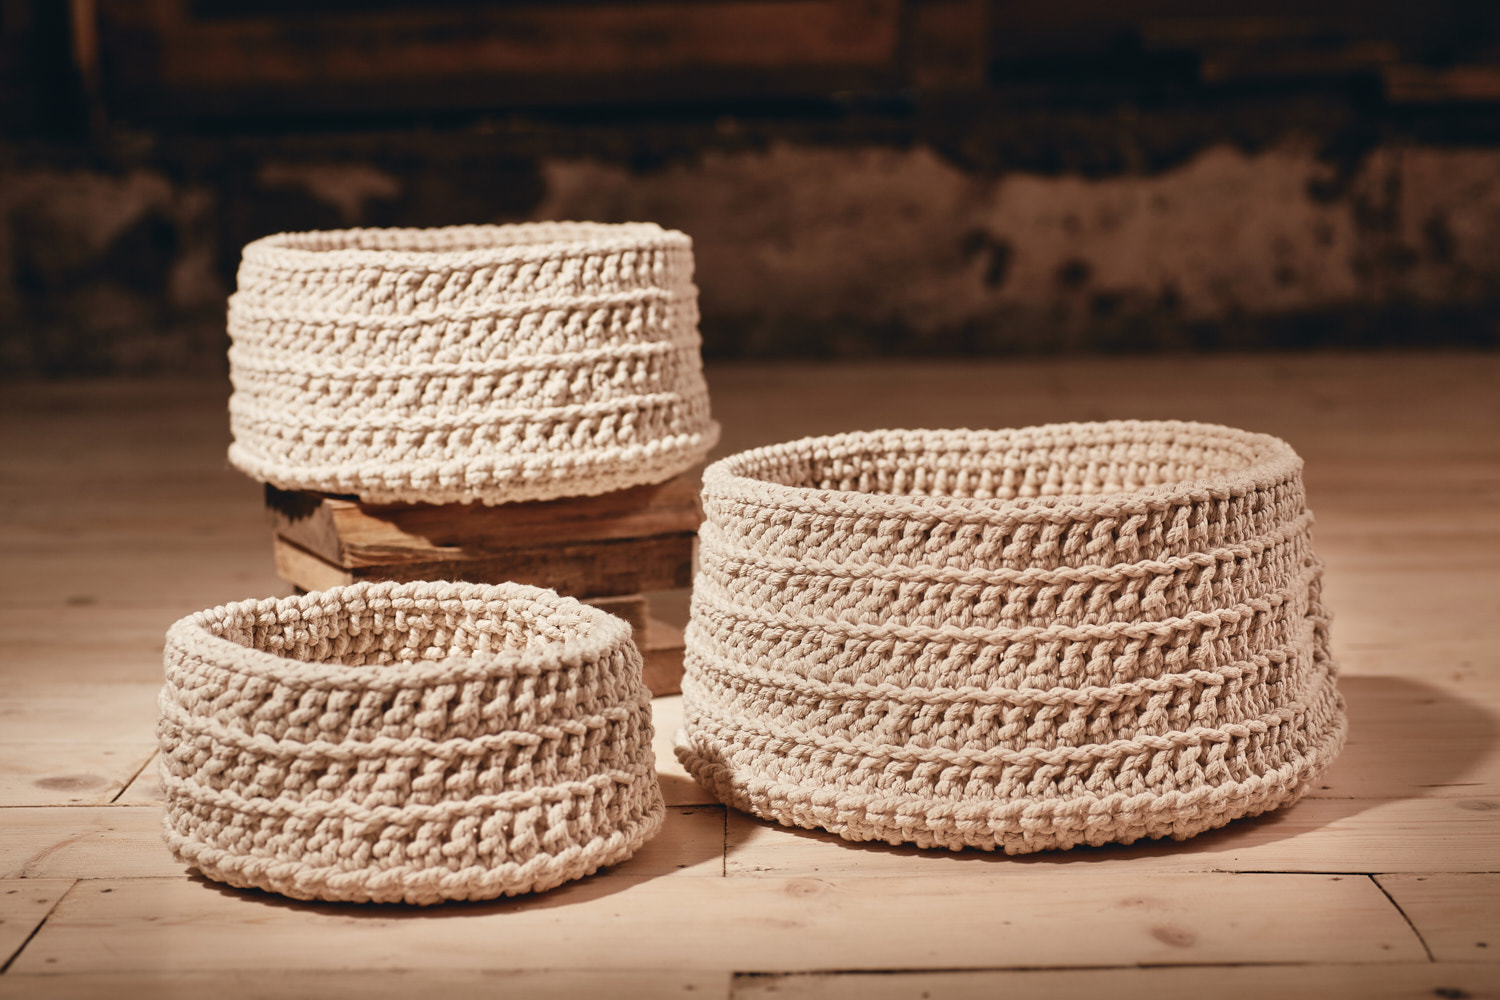 BASKETS   Round,multi-use, hand-crocheted baskets   Recycled Cotton (chunky) Available in:  Small - Approx. 23cm x 12cm  Medium - Approx.30cm x 15cm  Large - Approx. 35cm x 18cm